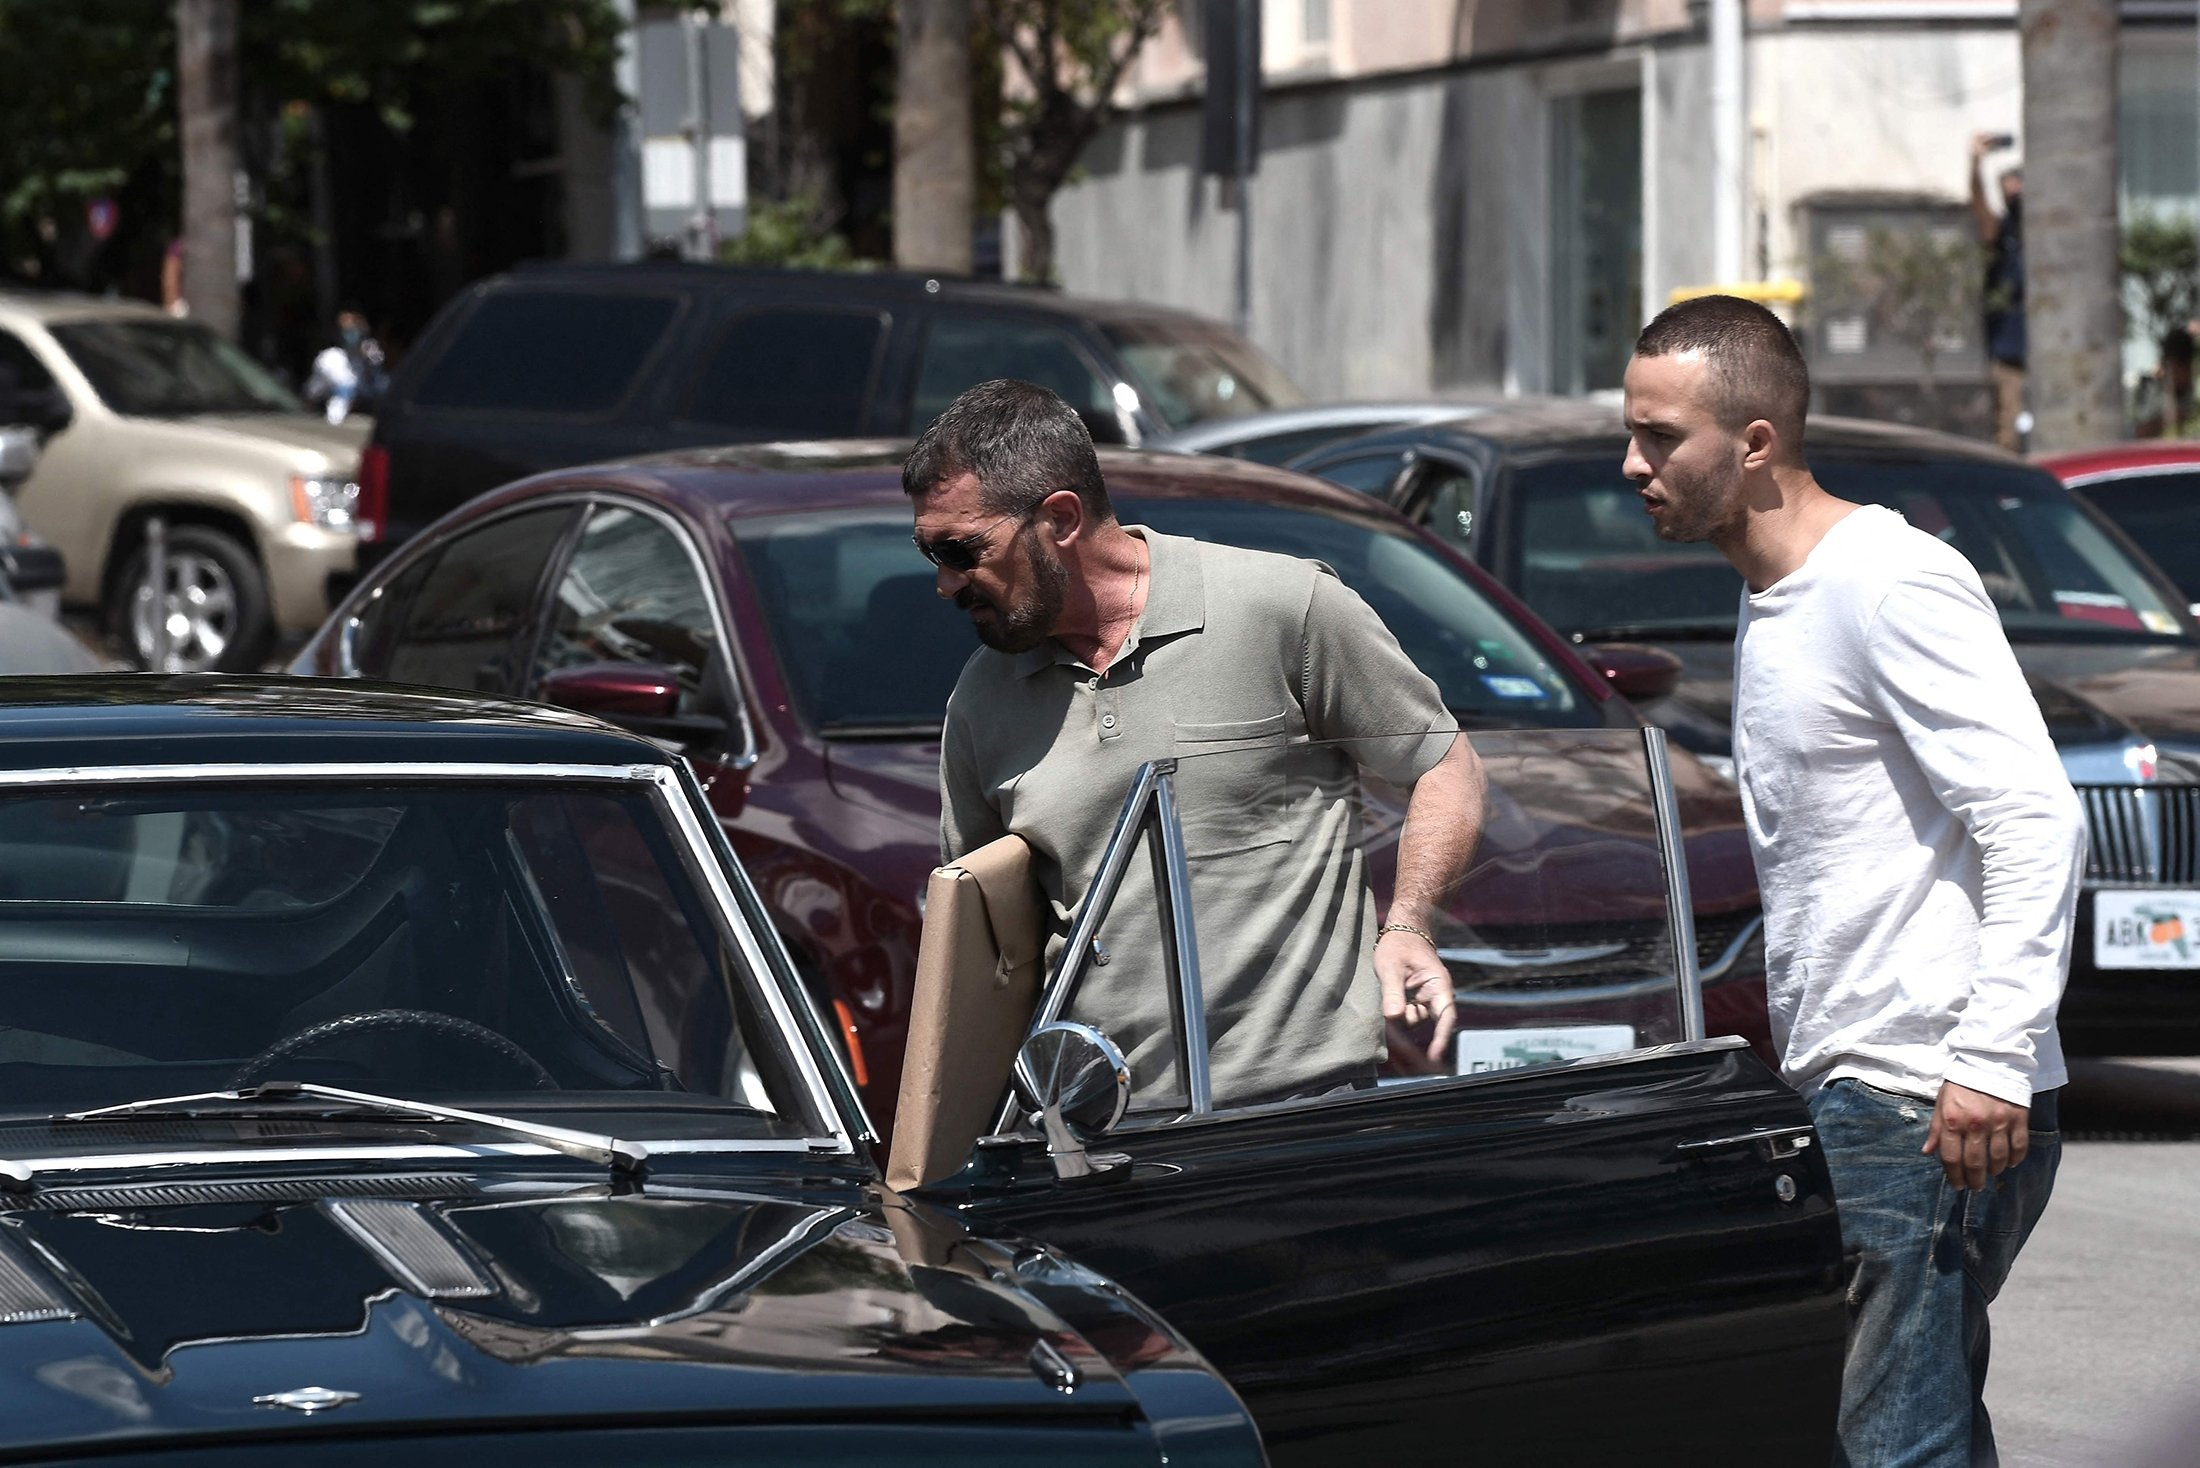 Spanish actor, director and producer Antonio Banderas (L) enters a car, flanked by a crew member during the filming of the action thriller, 'The Enforcer,' in the streets of Thessaloniki, Greece, July 3, 2021. (AFP Photo)